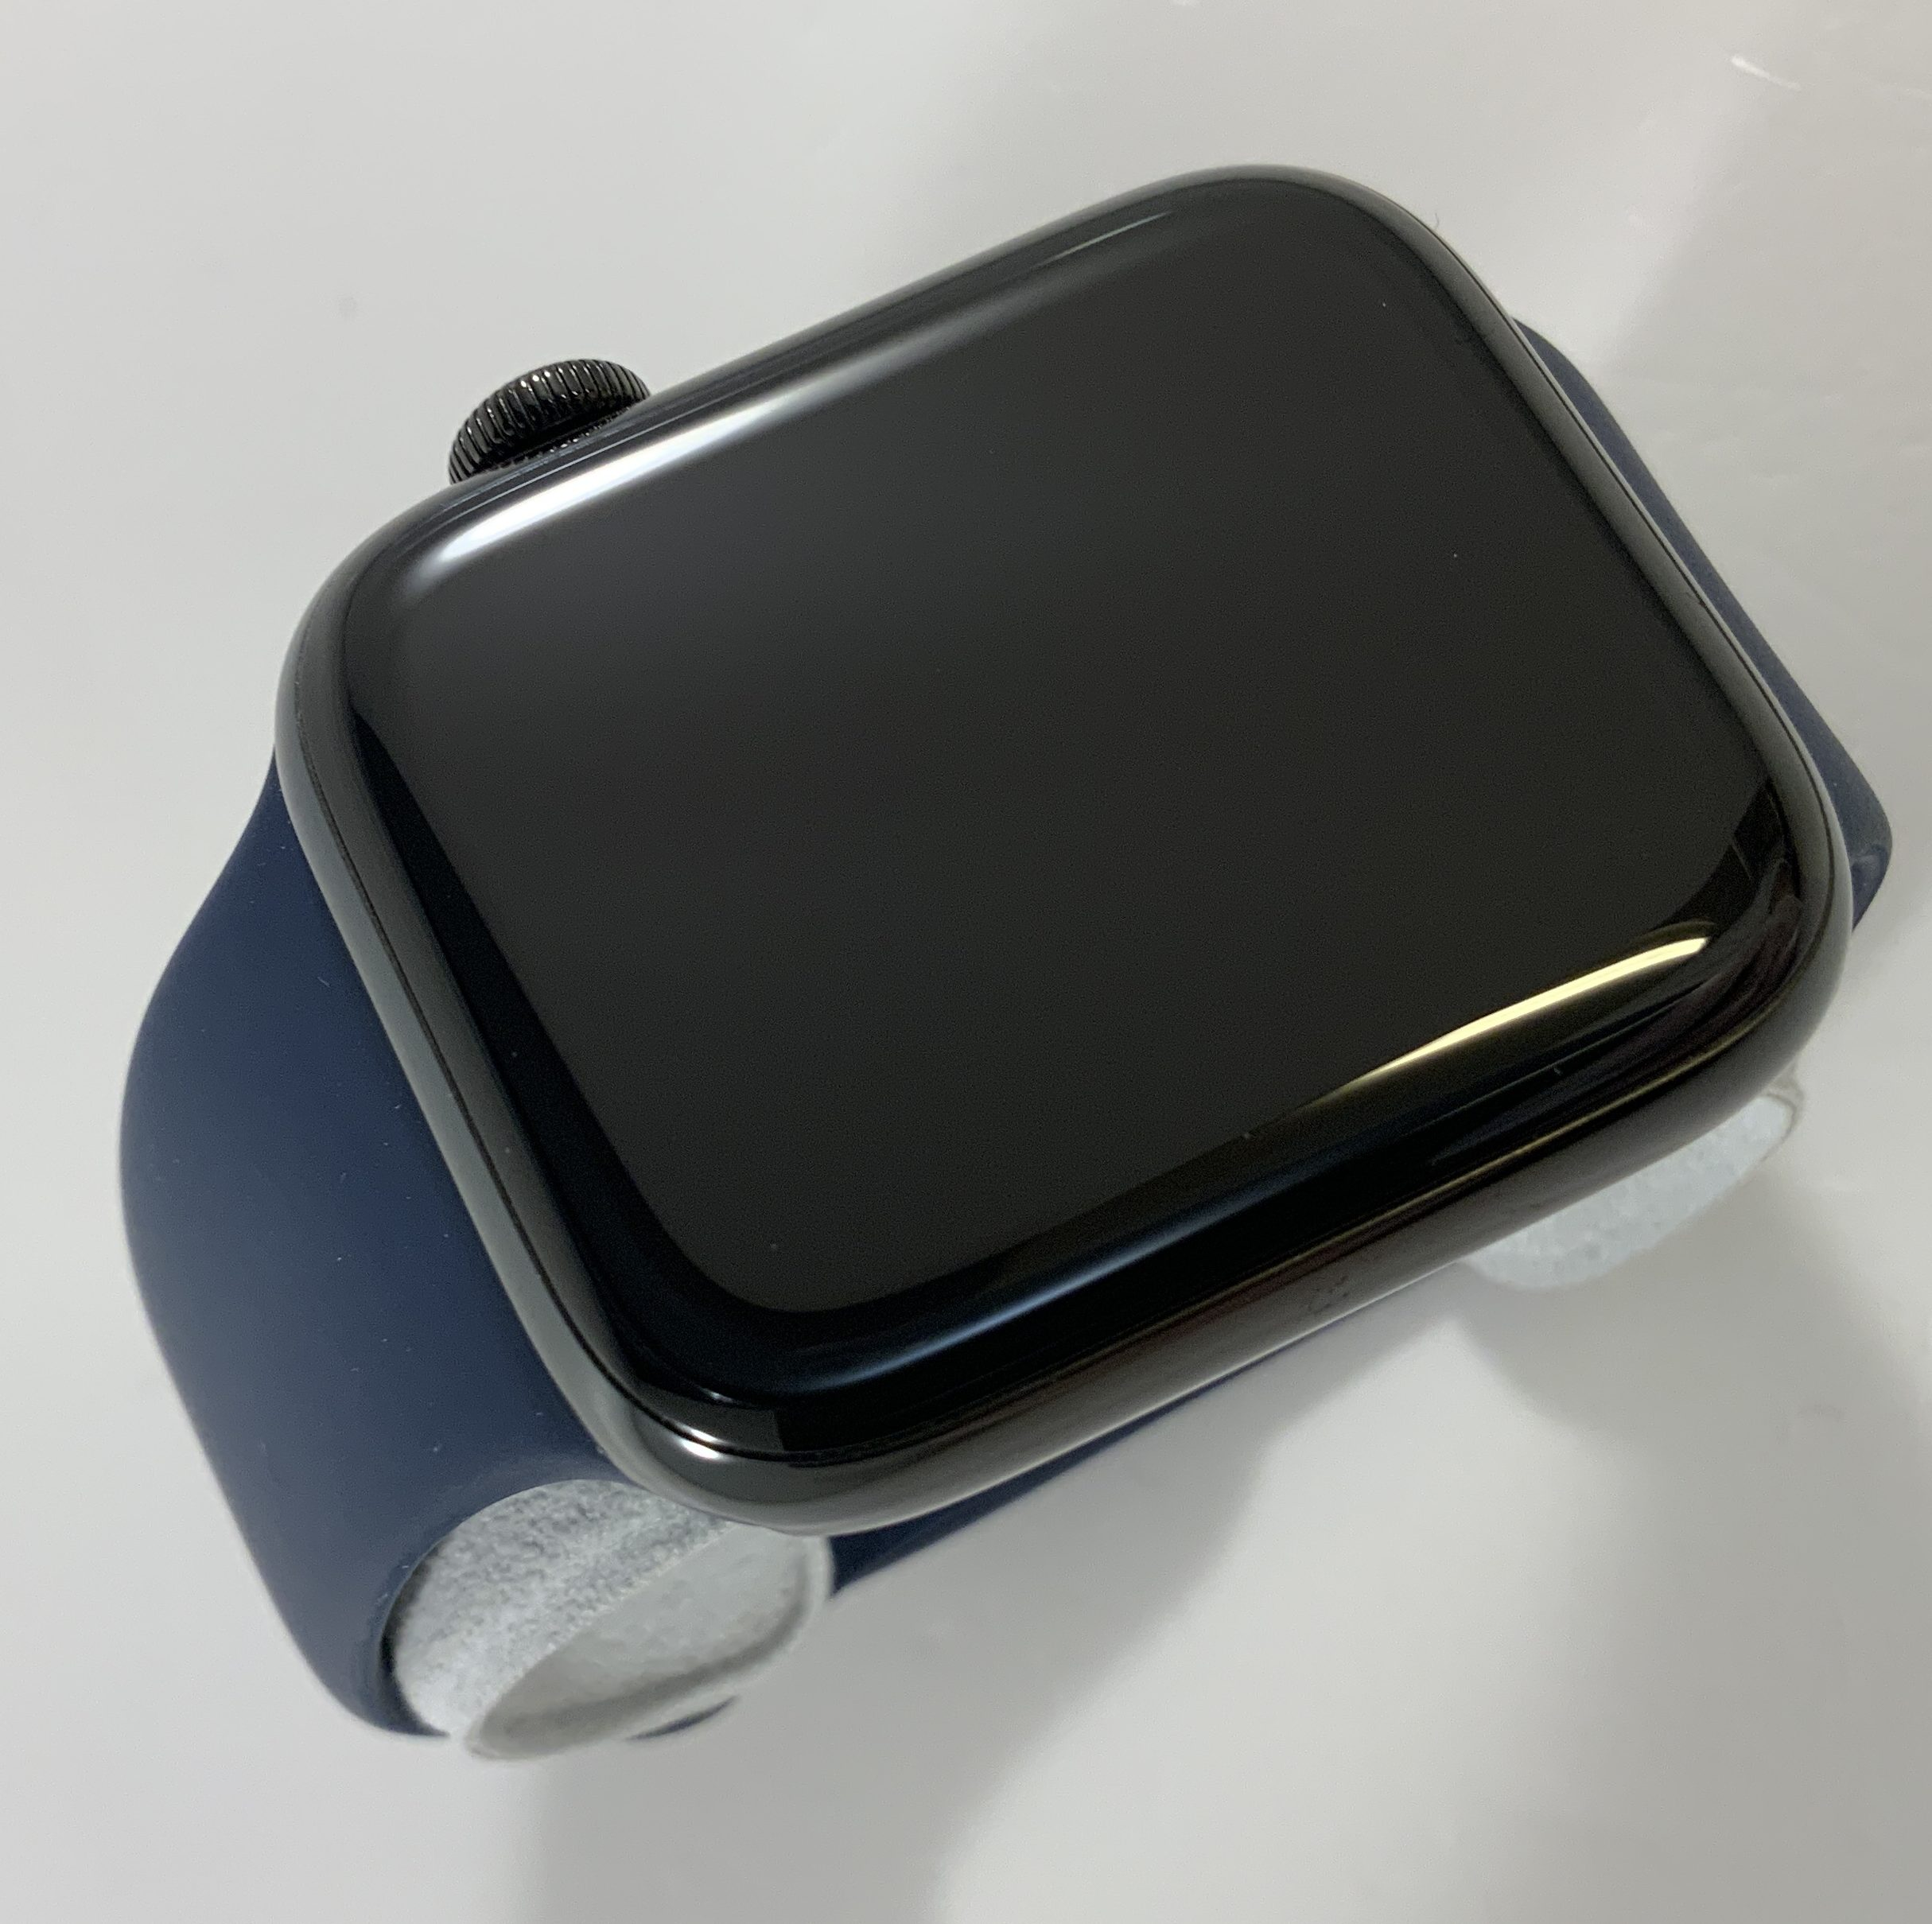 Watch Series 5 Steel Cellular (44mm), Space Black, image 4